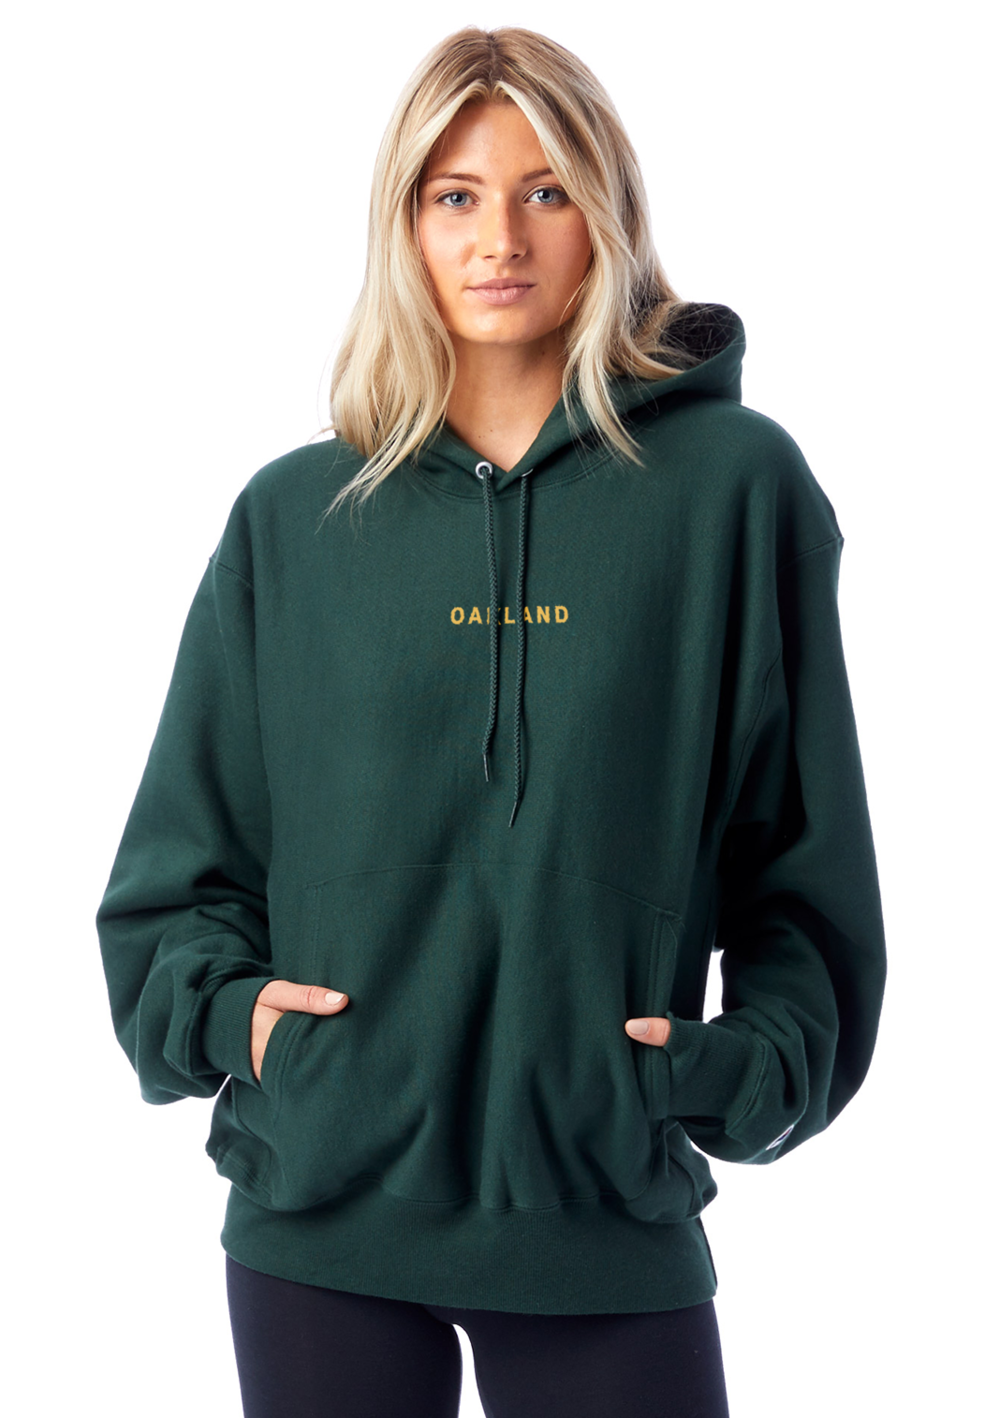 Sky Oak Co_THE BAY_Champion_green_reverse_weave_hoodie_women_model_cover.png